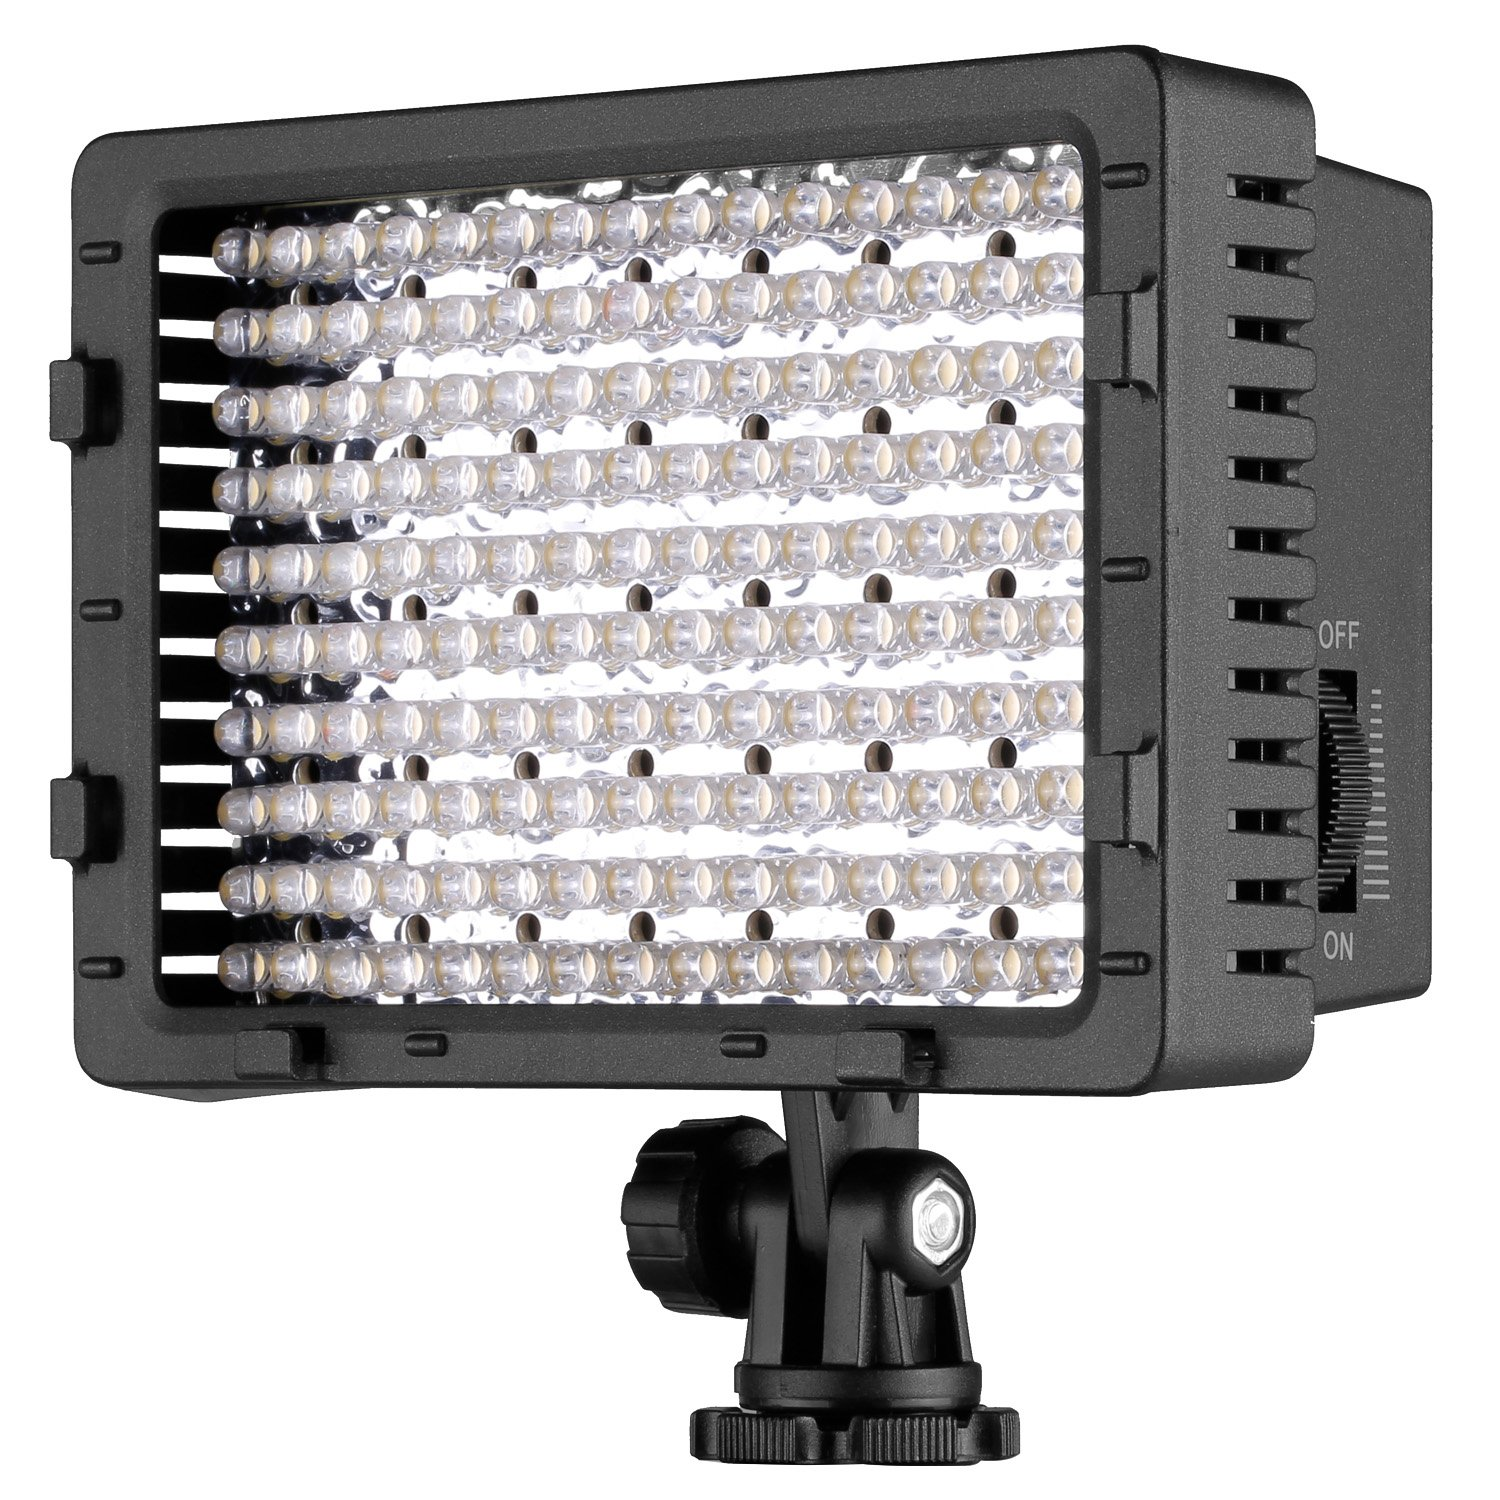 NEEWER CN-216 216PCS LED Dimmable Ultra High Power Panel Digital Camera/Camcorder Video Light, LED Light for Canon, Nikon, Pentax, Panasonic, SONY, Samsung and Olympus Digital SLR Cameras 10065765